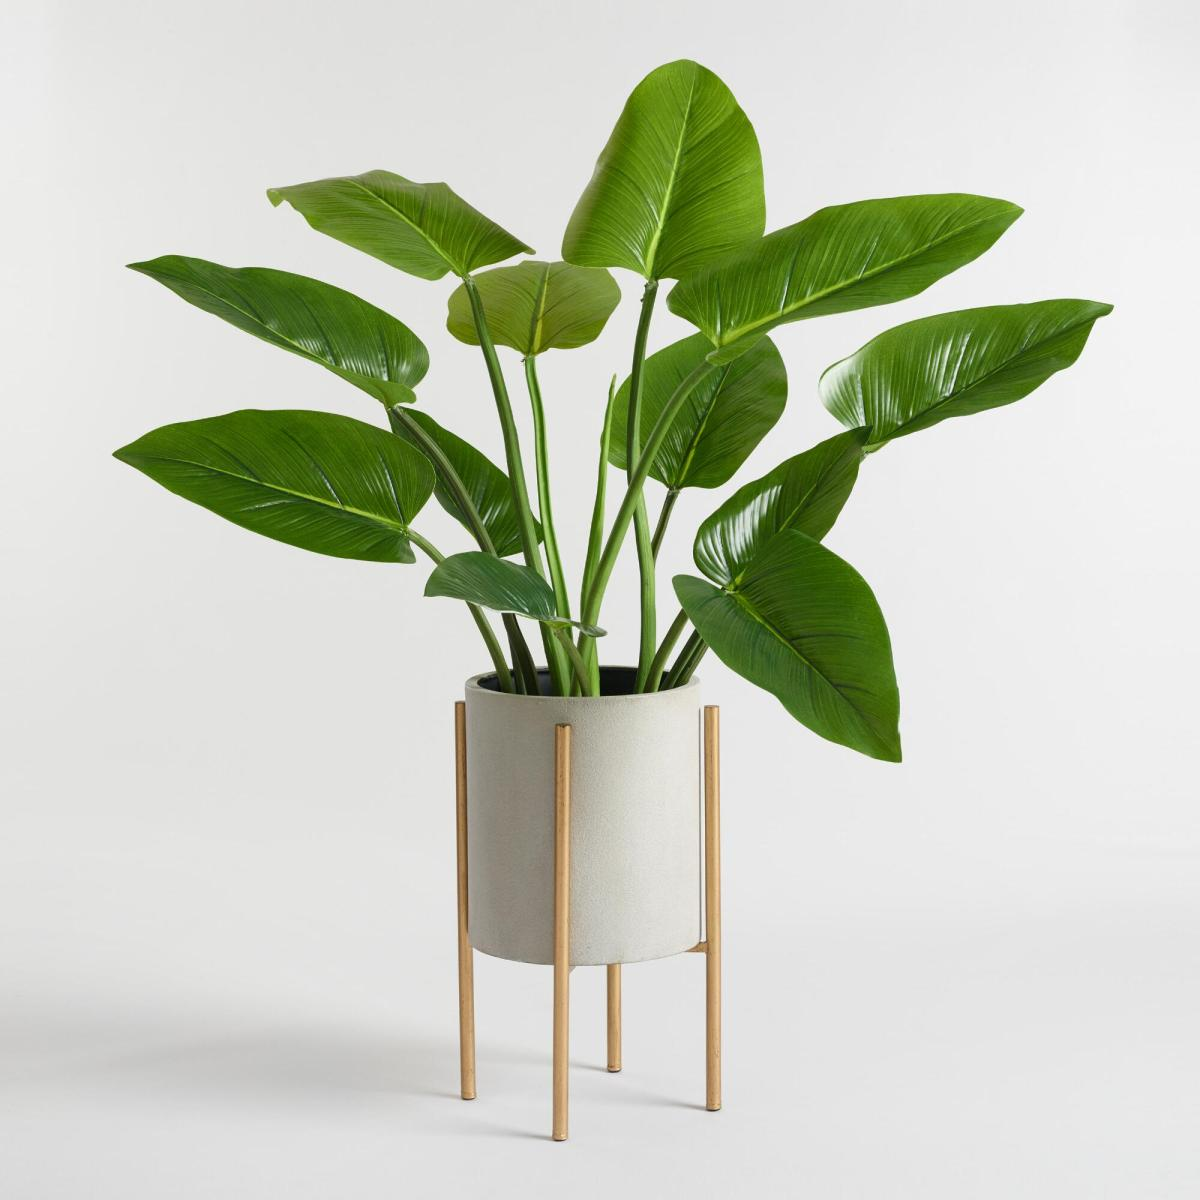 Elevated Modern Planter